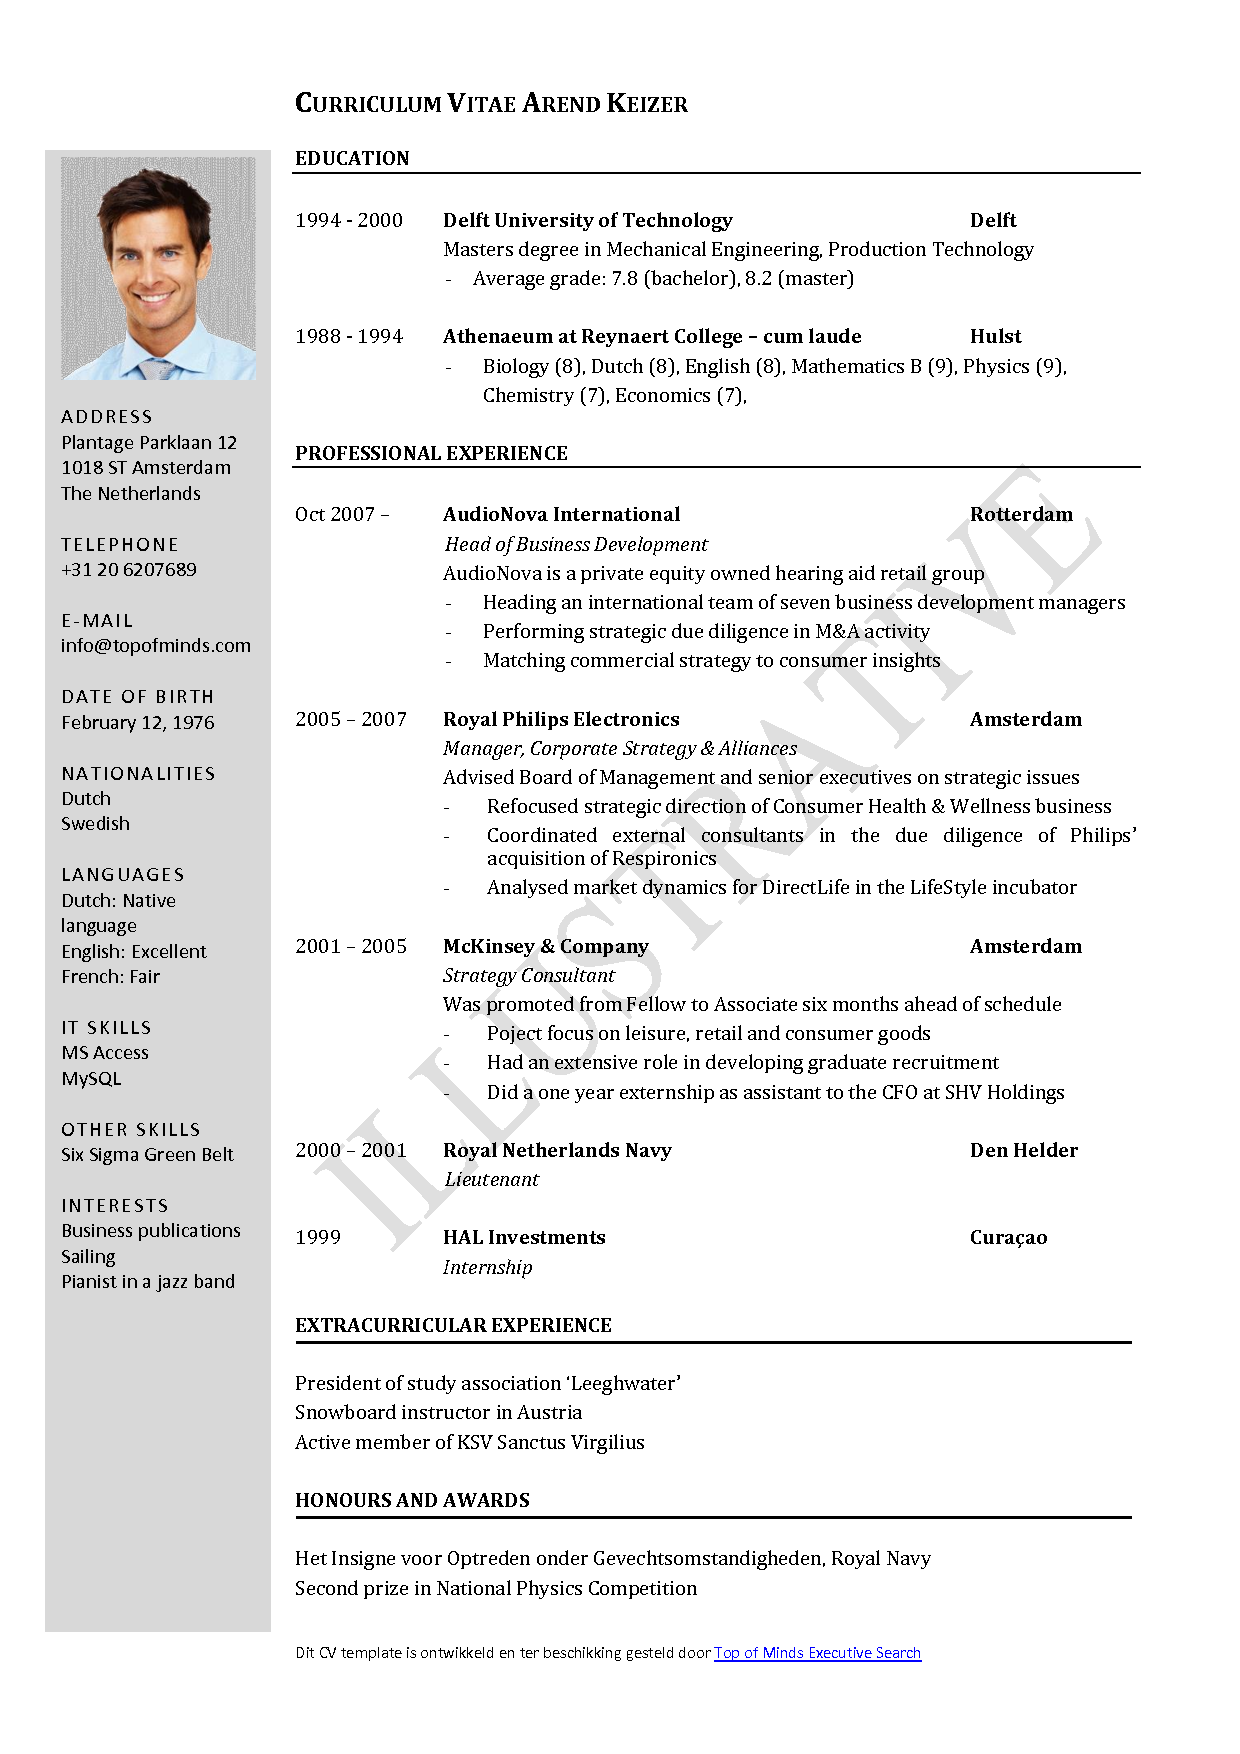 Free curriculum vitae template word download cv template when i free curriculum vitae template word download cv template yelopaper Choice Image